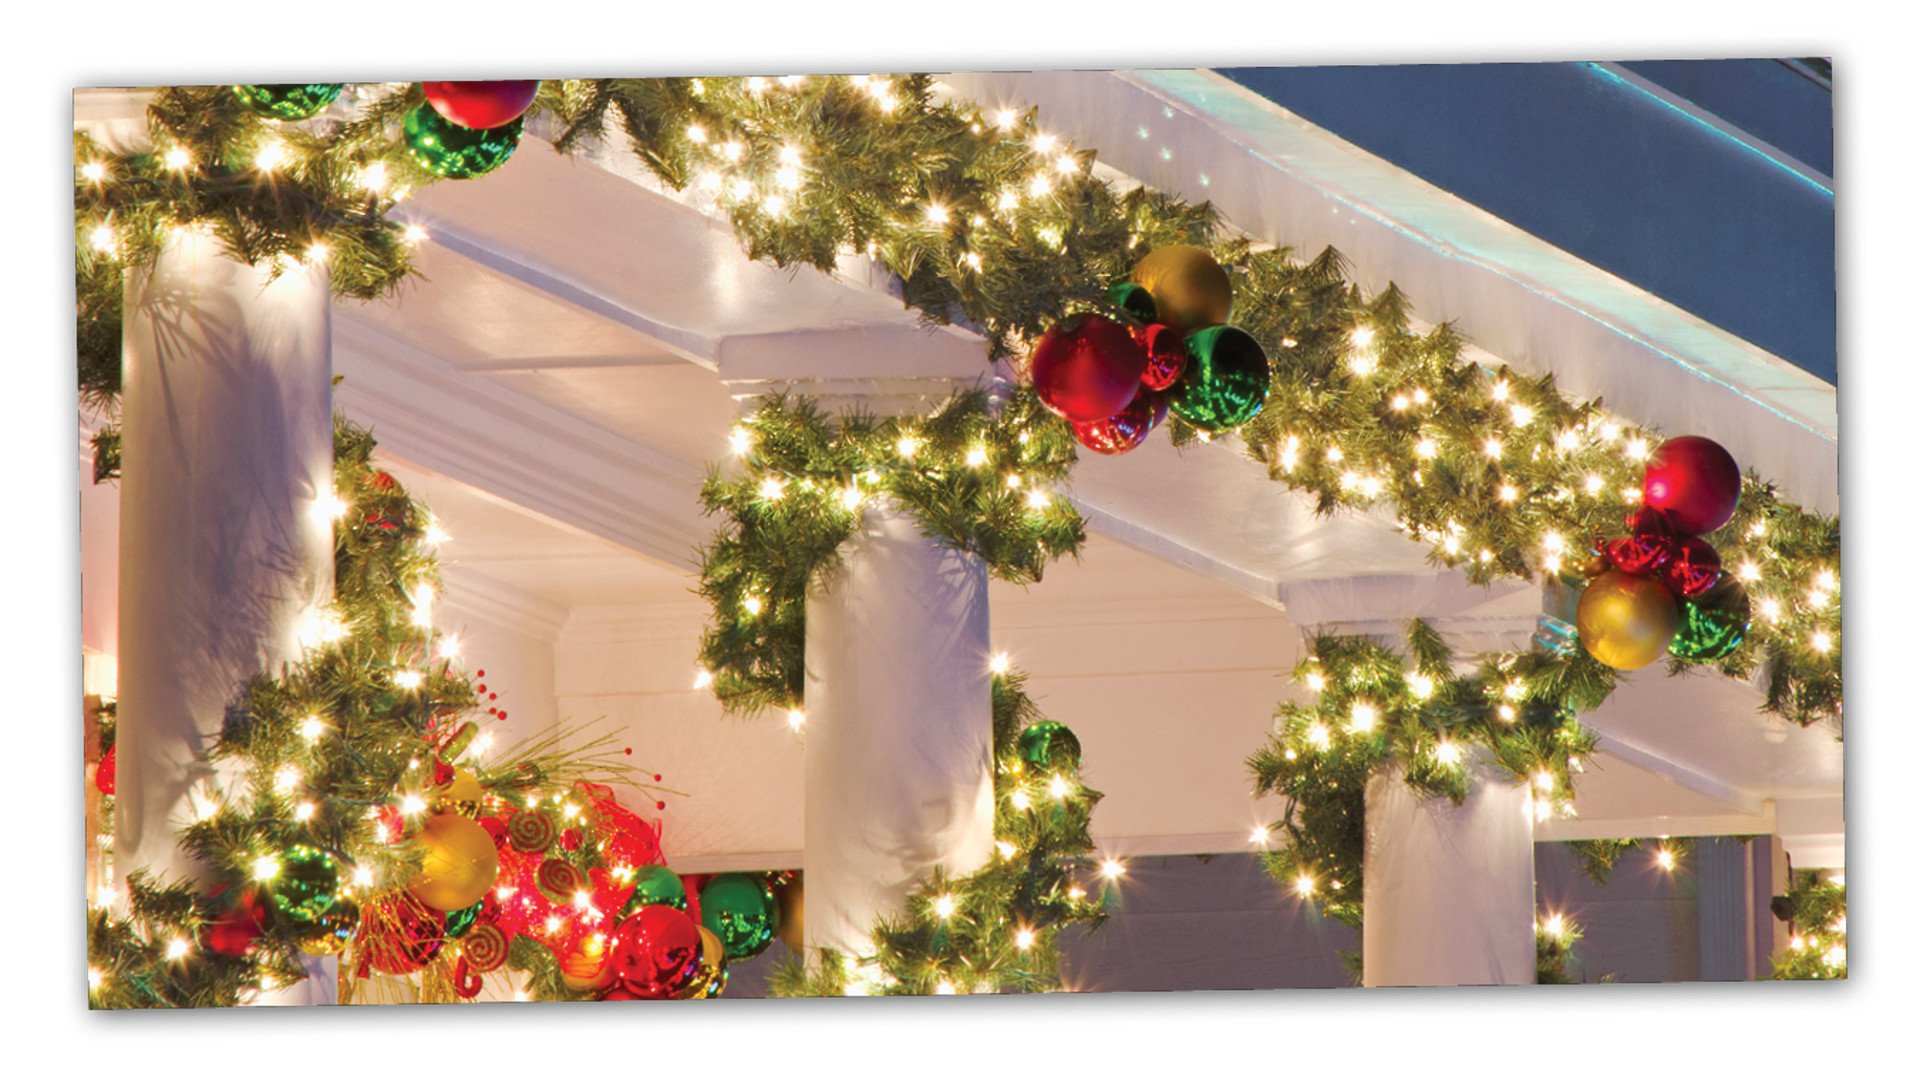 Commercial Christmas Decorations - Christmas Designers